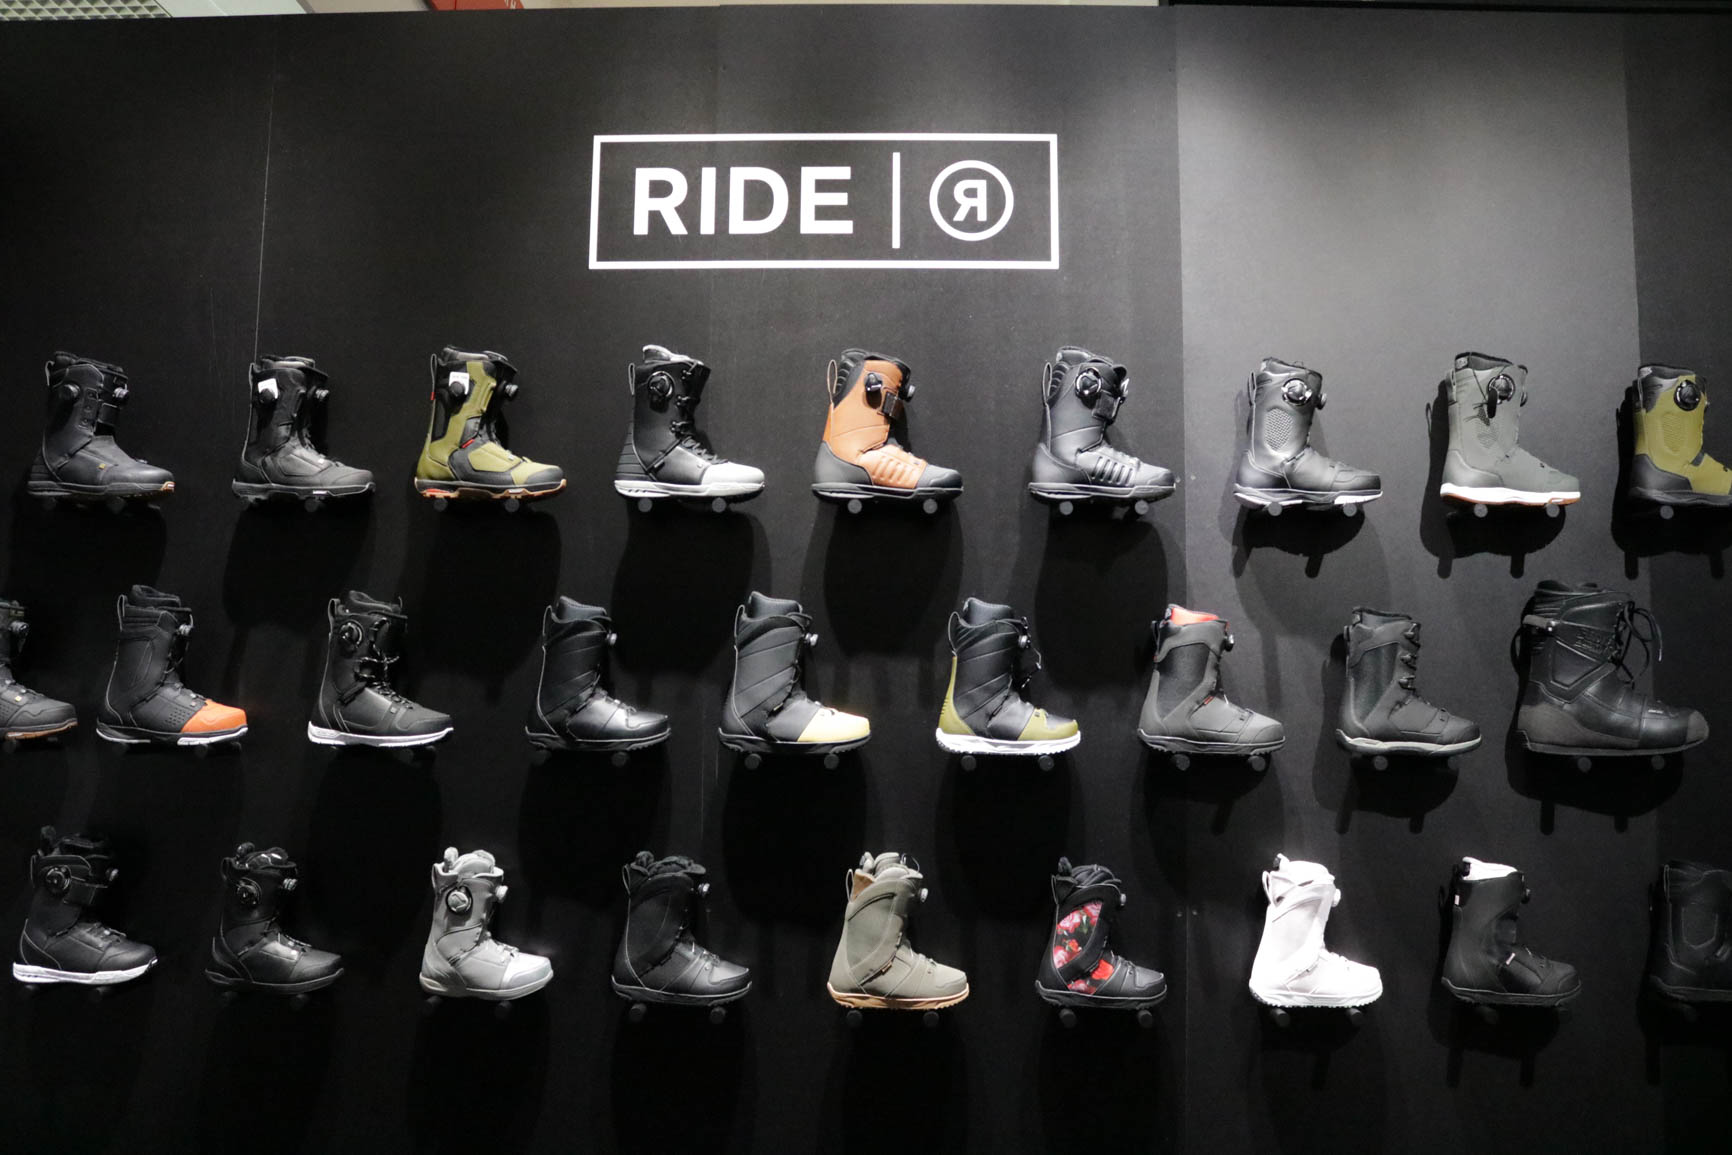 Ride Snowboards Boots 18/19